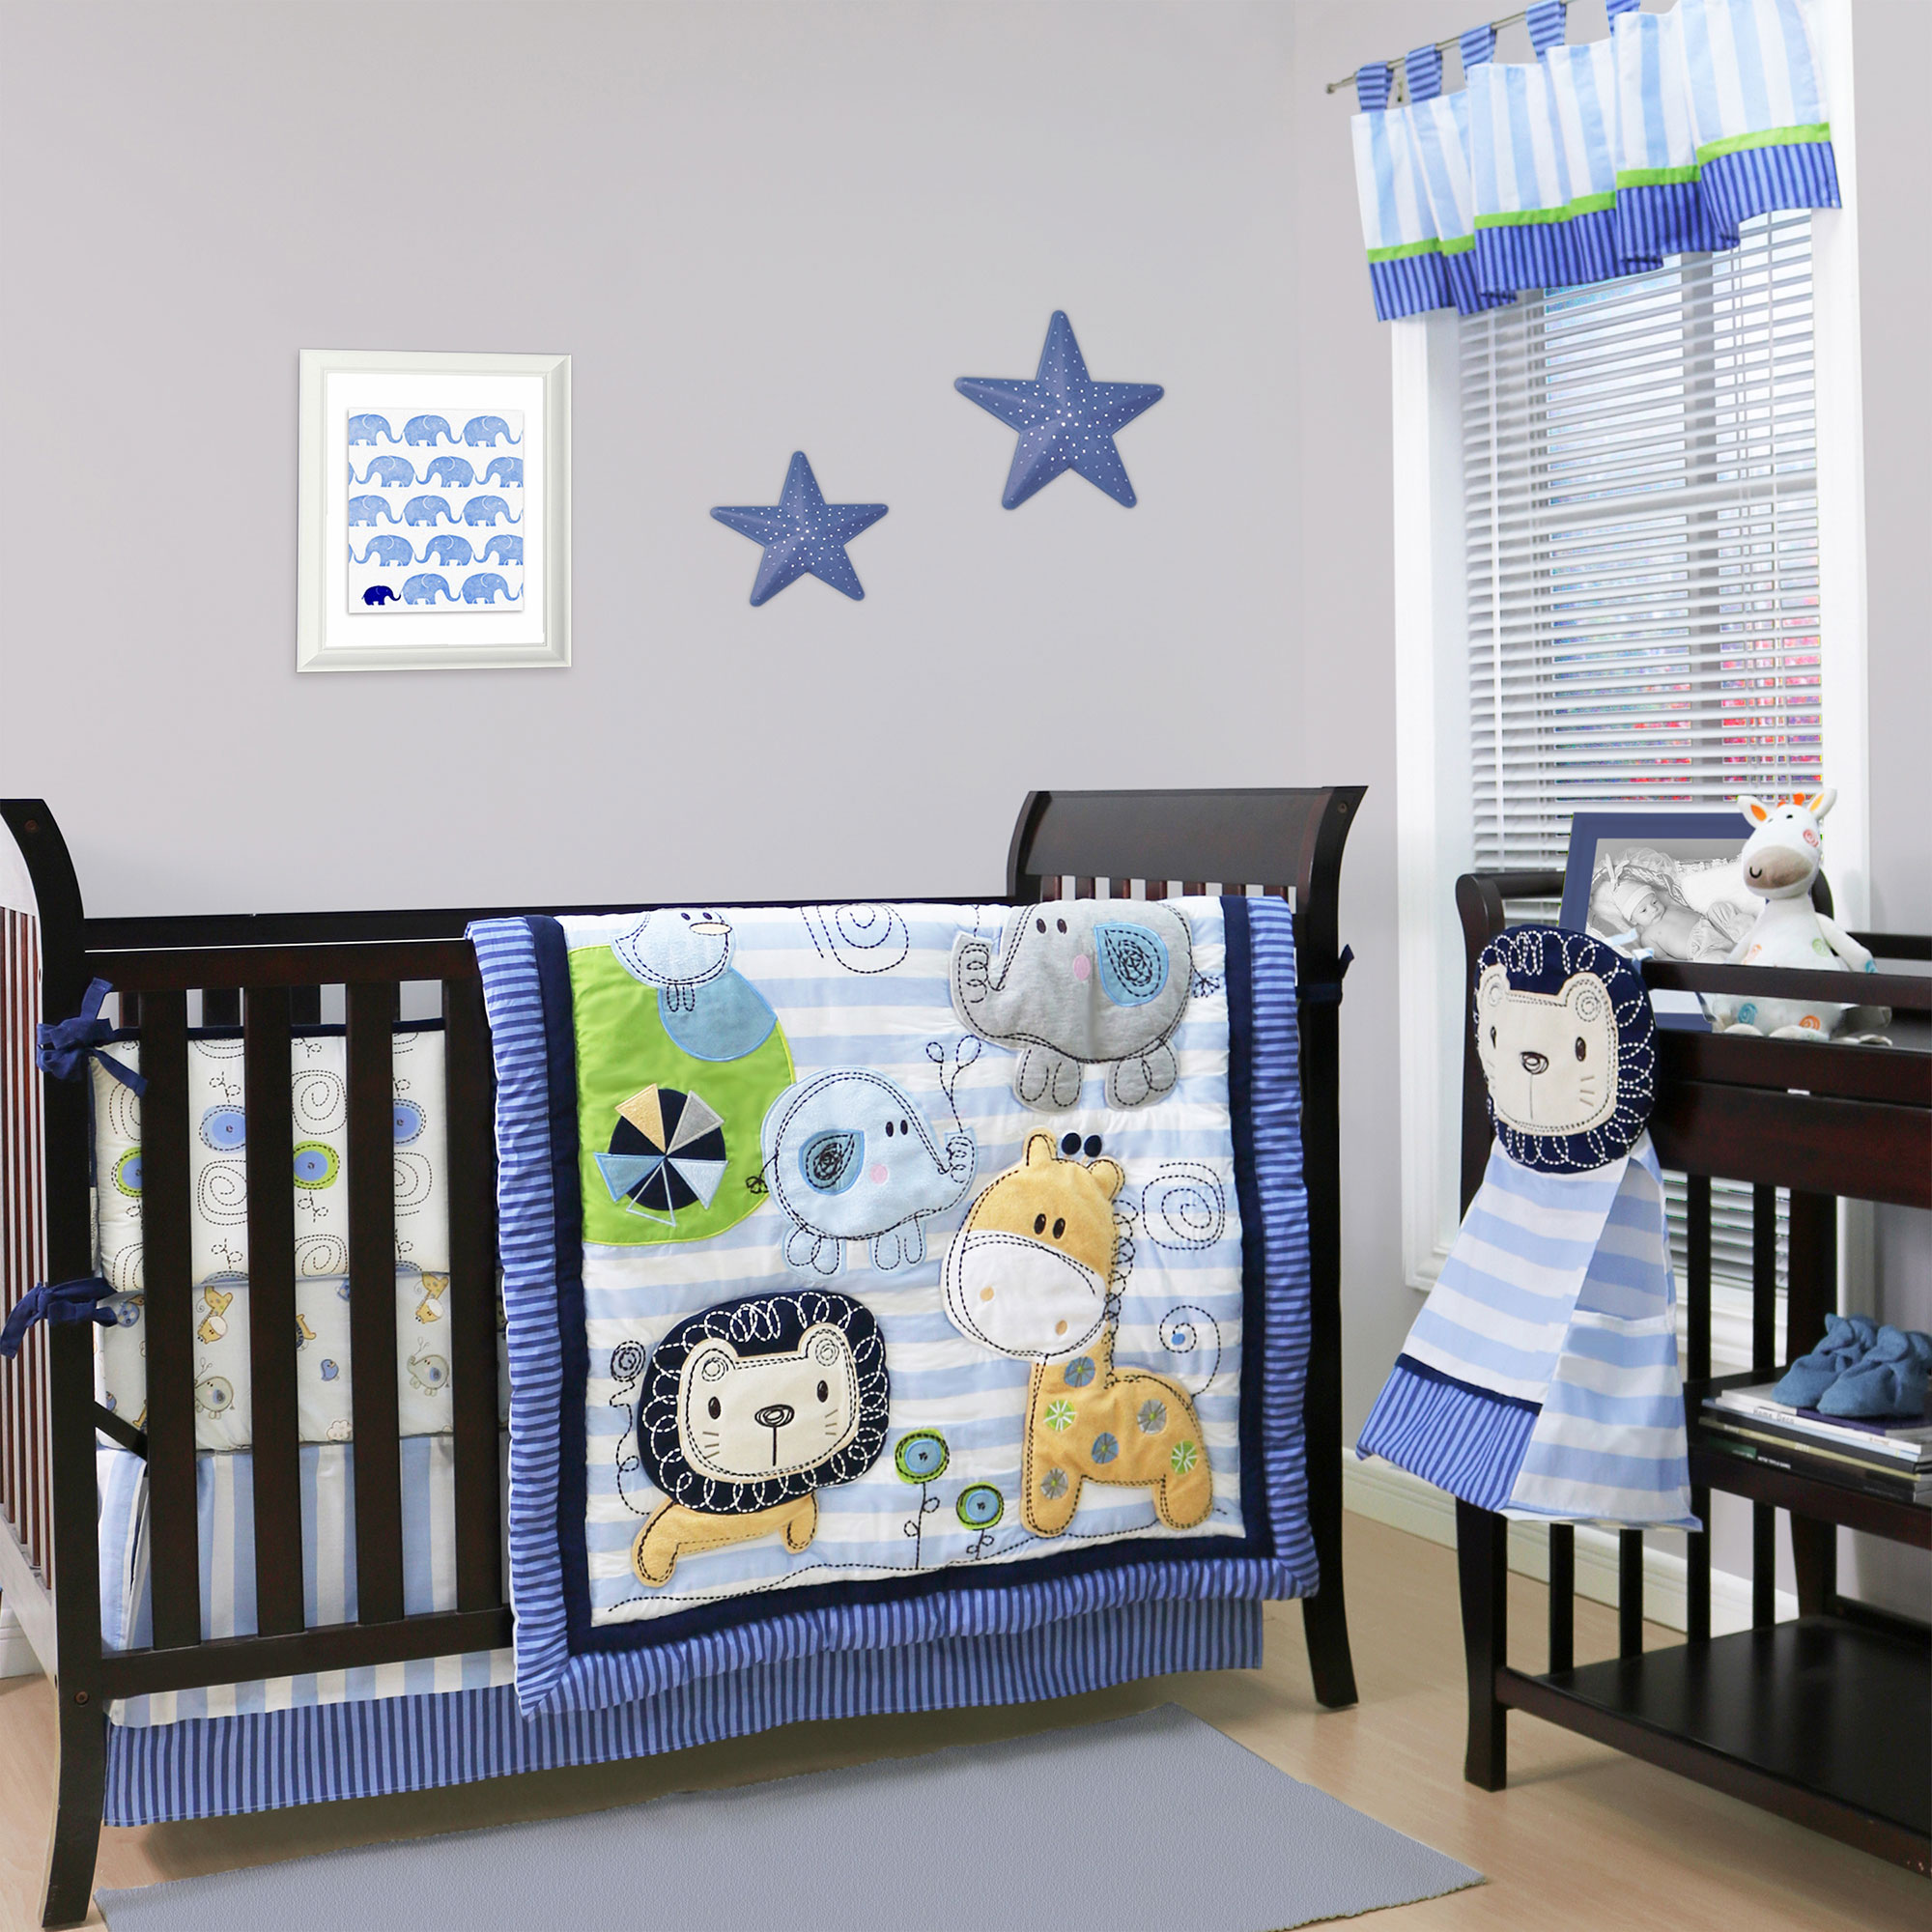 Belle Baby Crib Bedding Set - Blue Jungle Theme - Baby Sketches 4 Piece Set